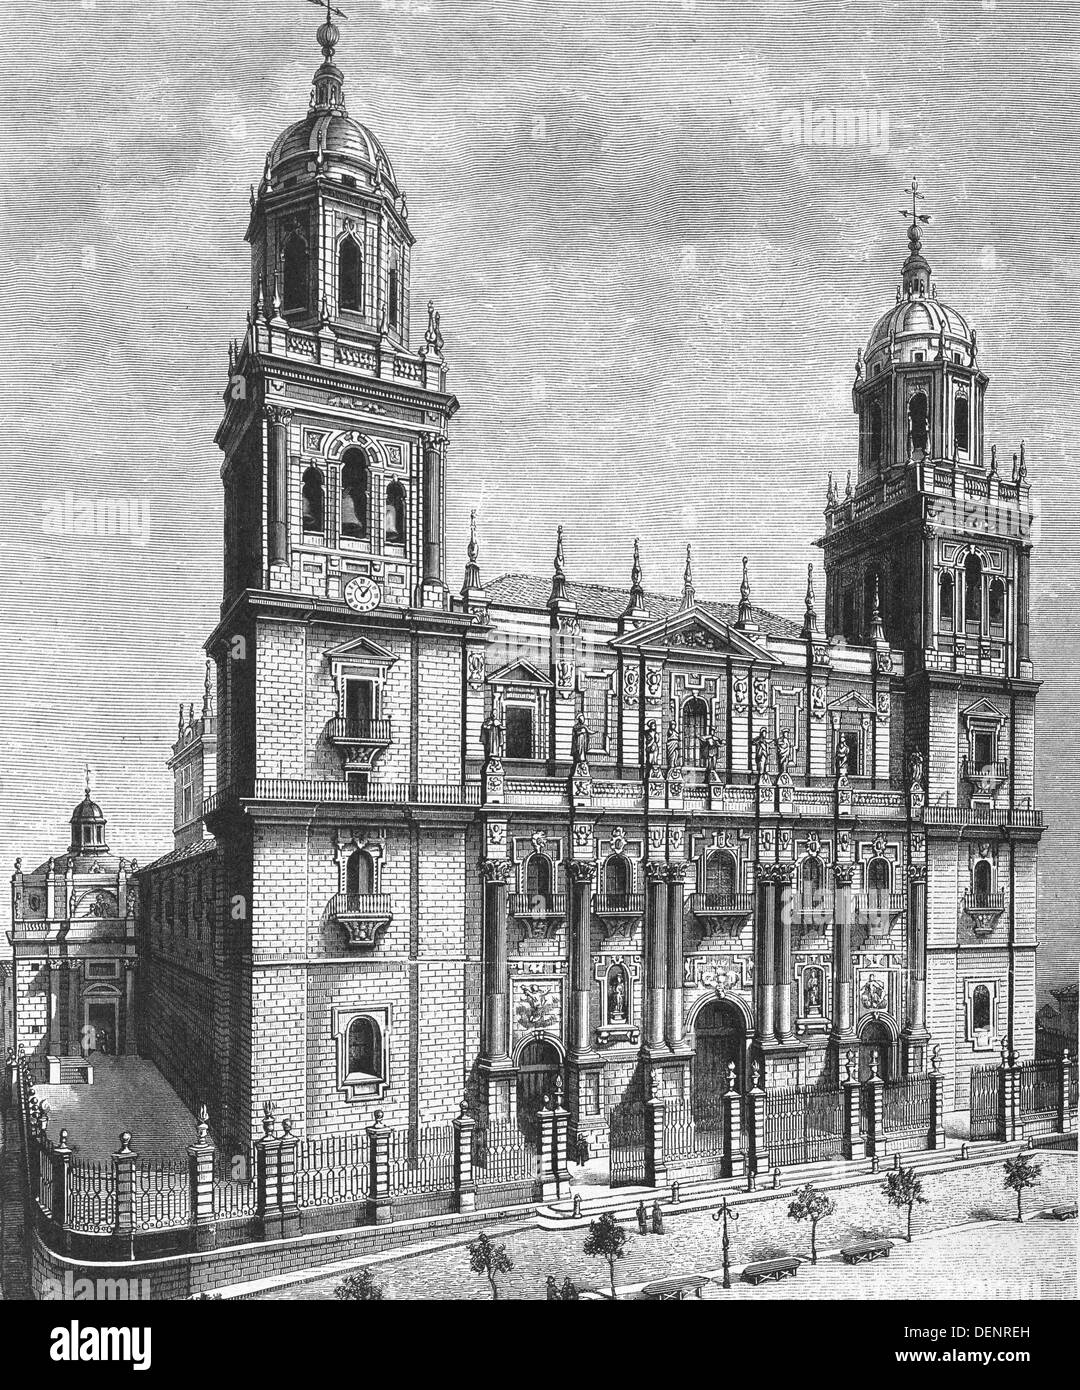 Façade. Cathedral. Jaen. Andalusia. Spain. Engraving, 1885 - Stock Image